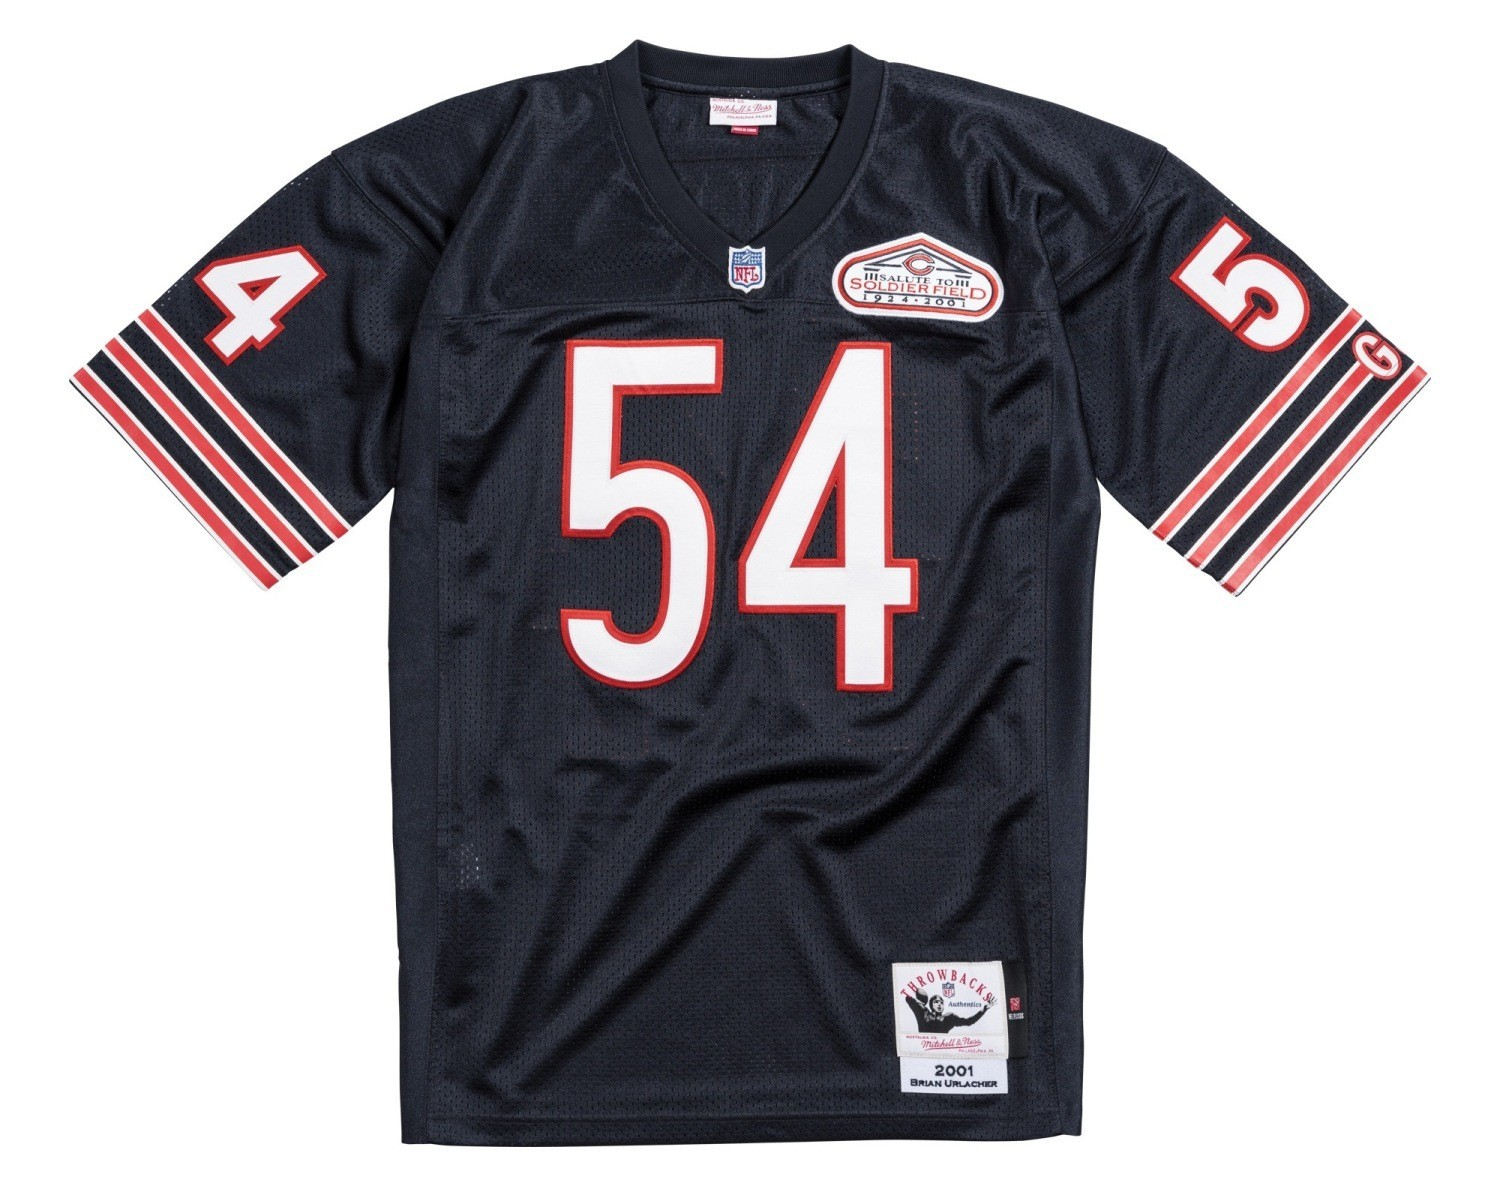 d051fcc9df3 Details about Brian Urlacher Chicago Bears NFL Mitchell & Ness Authentic  2001 Jersey